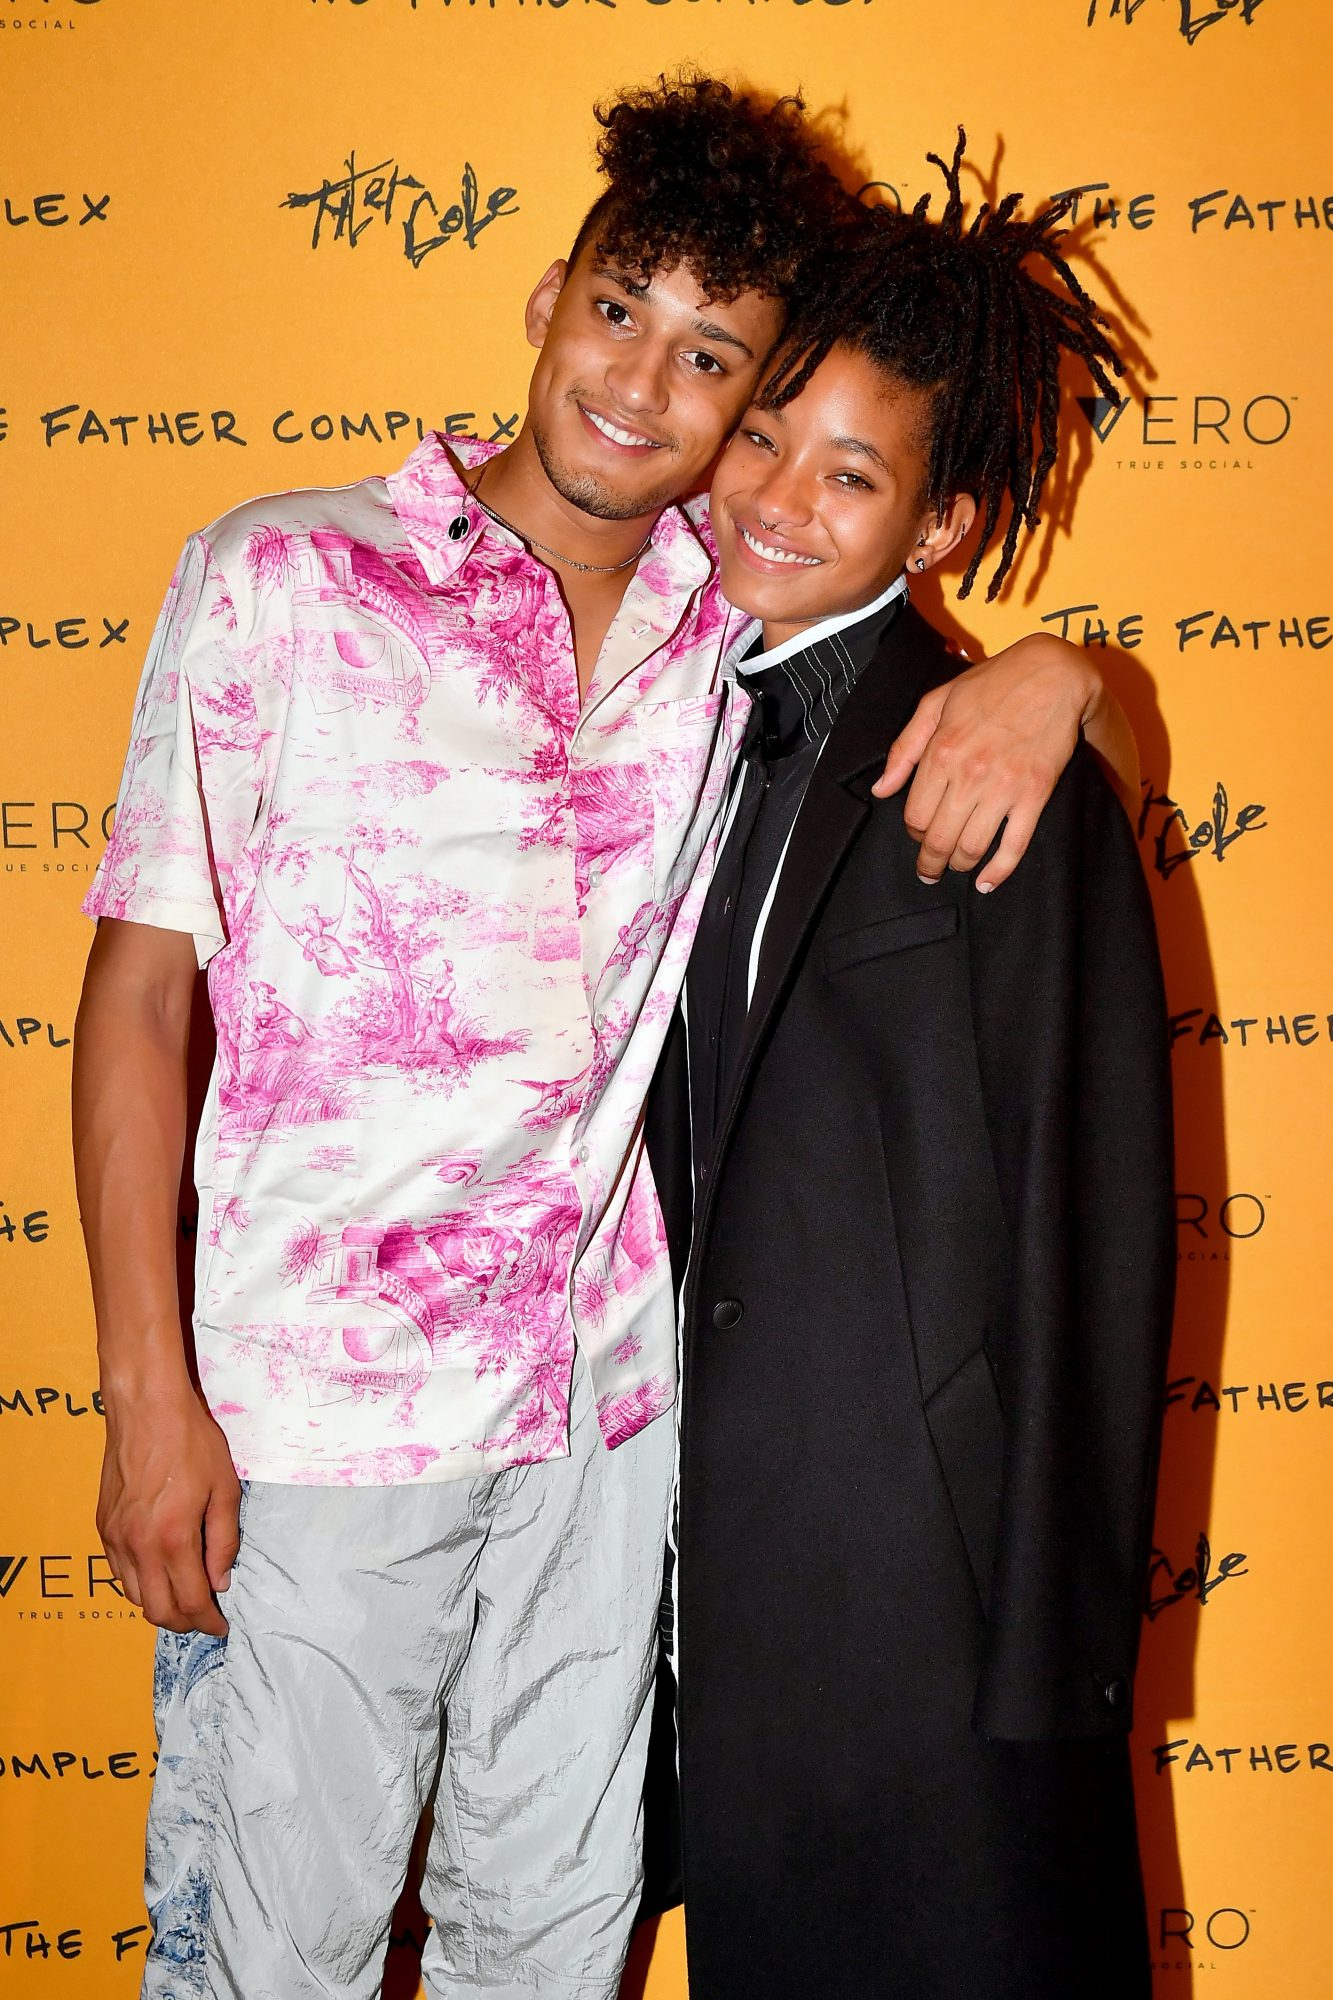 Tyler Cole with Willow Smith